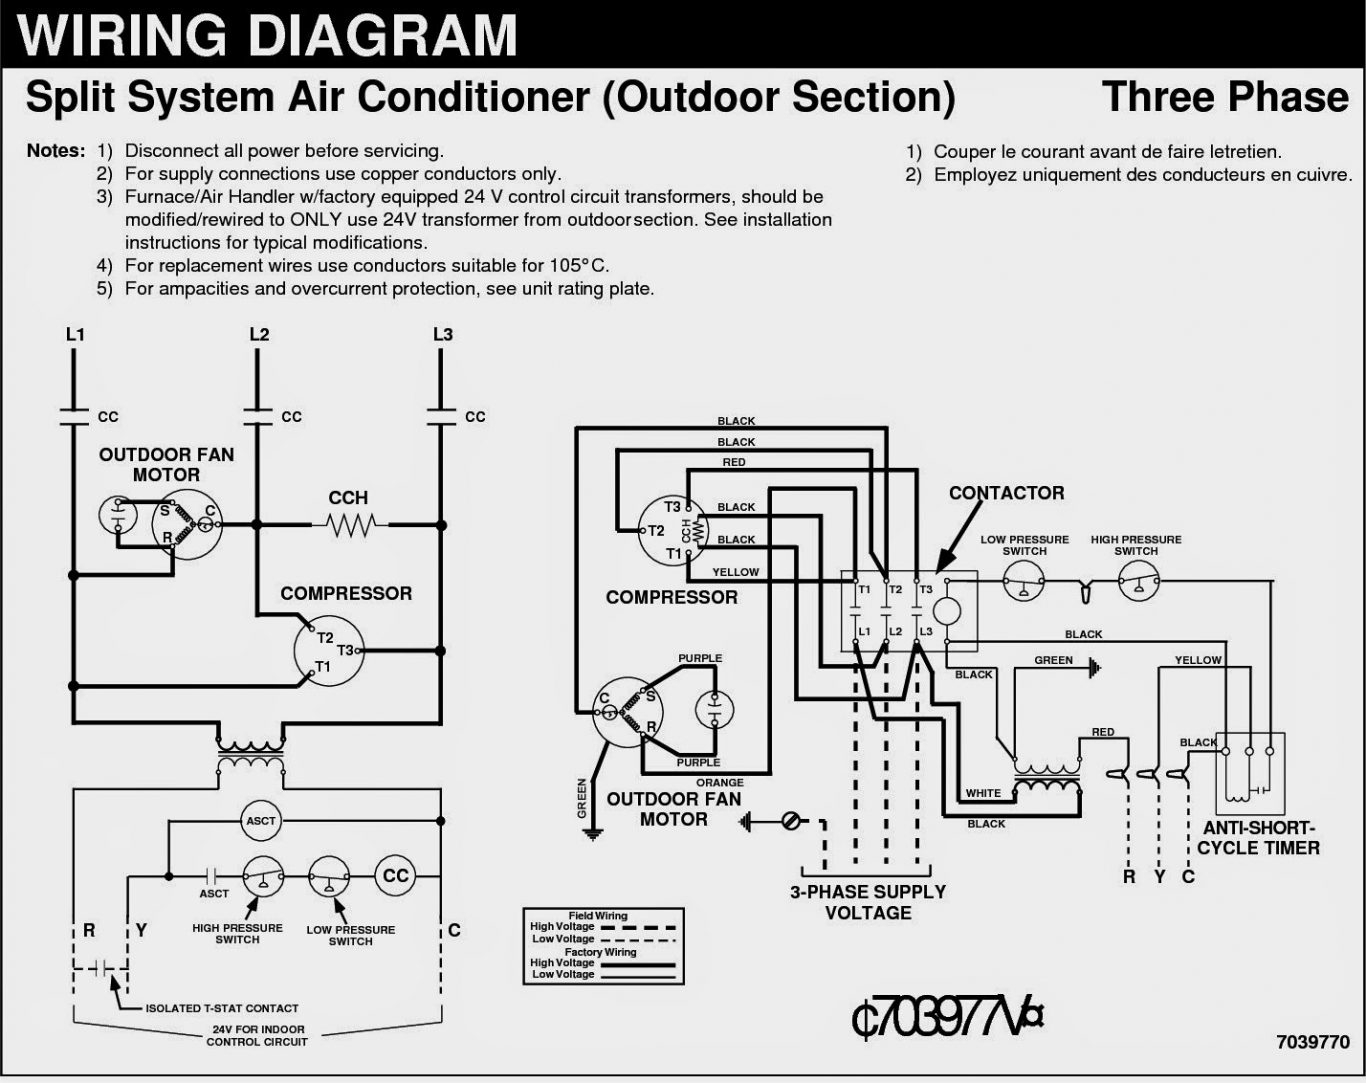 blue star air conditioner wiring diagram vita spa l200 wiring diagram gallery panasonic inverter air conditioner wiring diagram #11